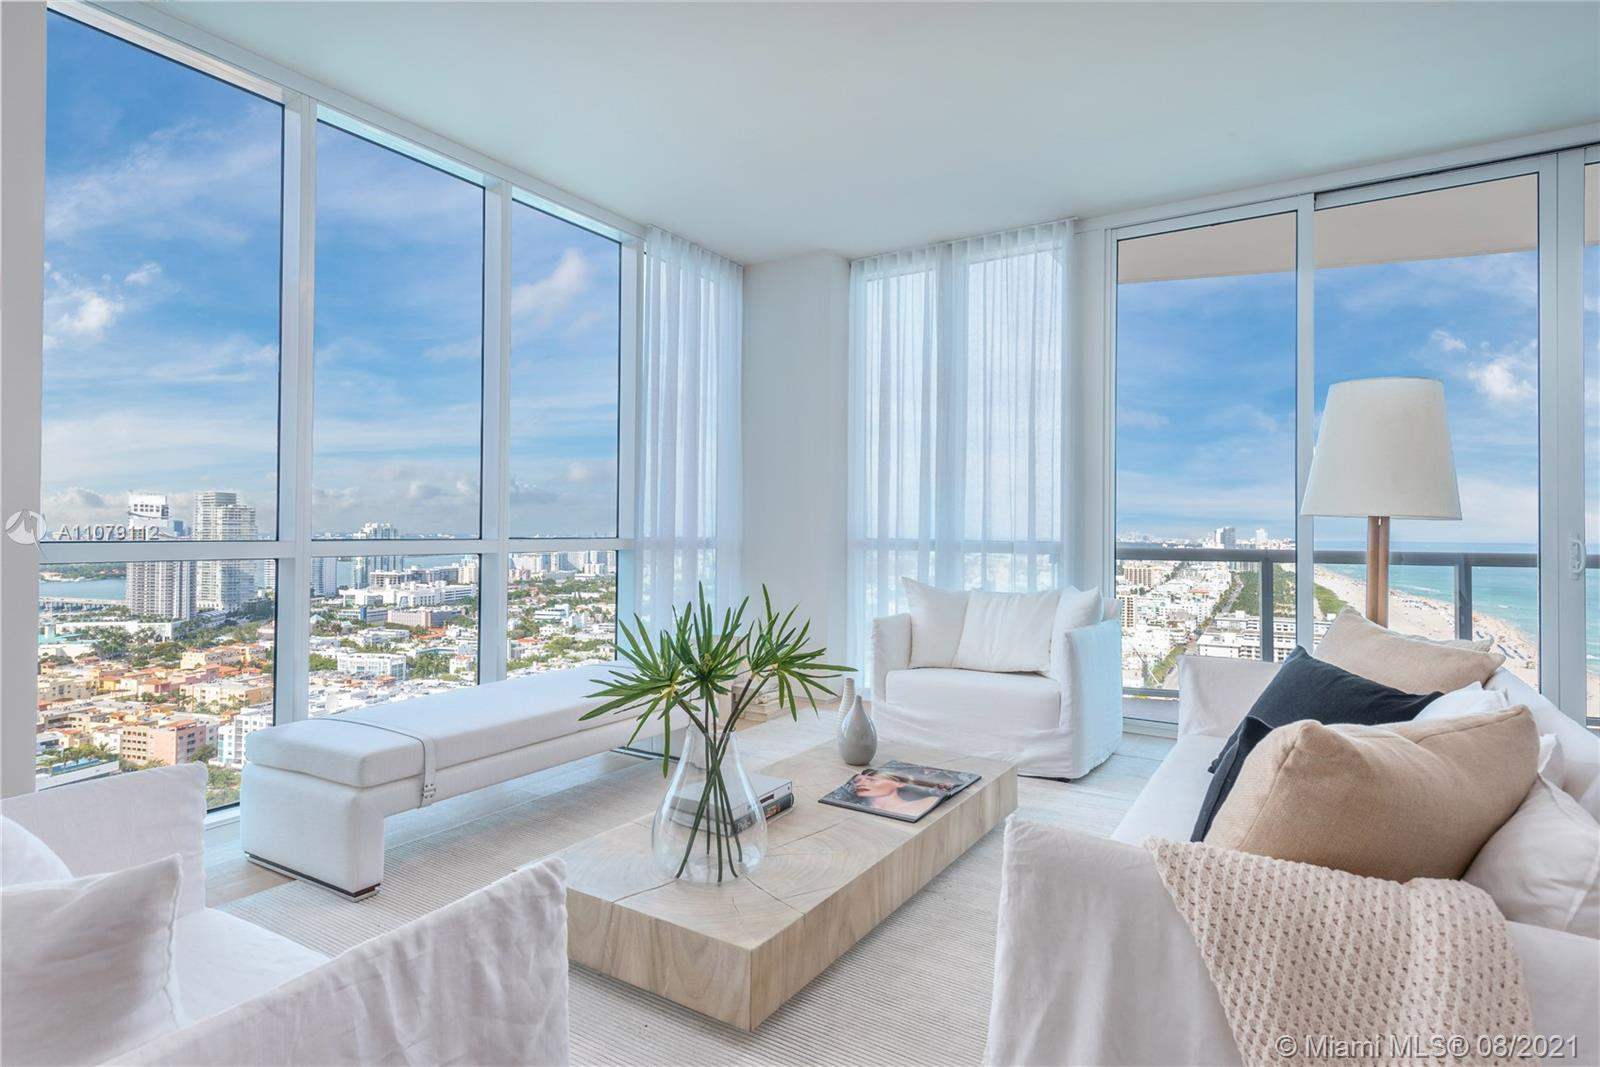 50 S Pointe Dr, Unit #3104 Luxury Real Estate